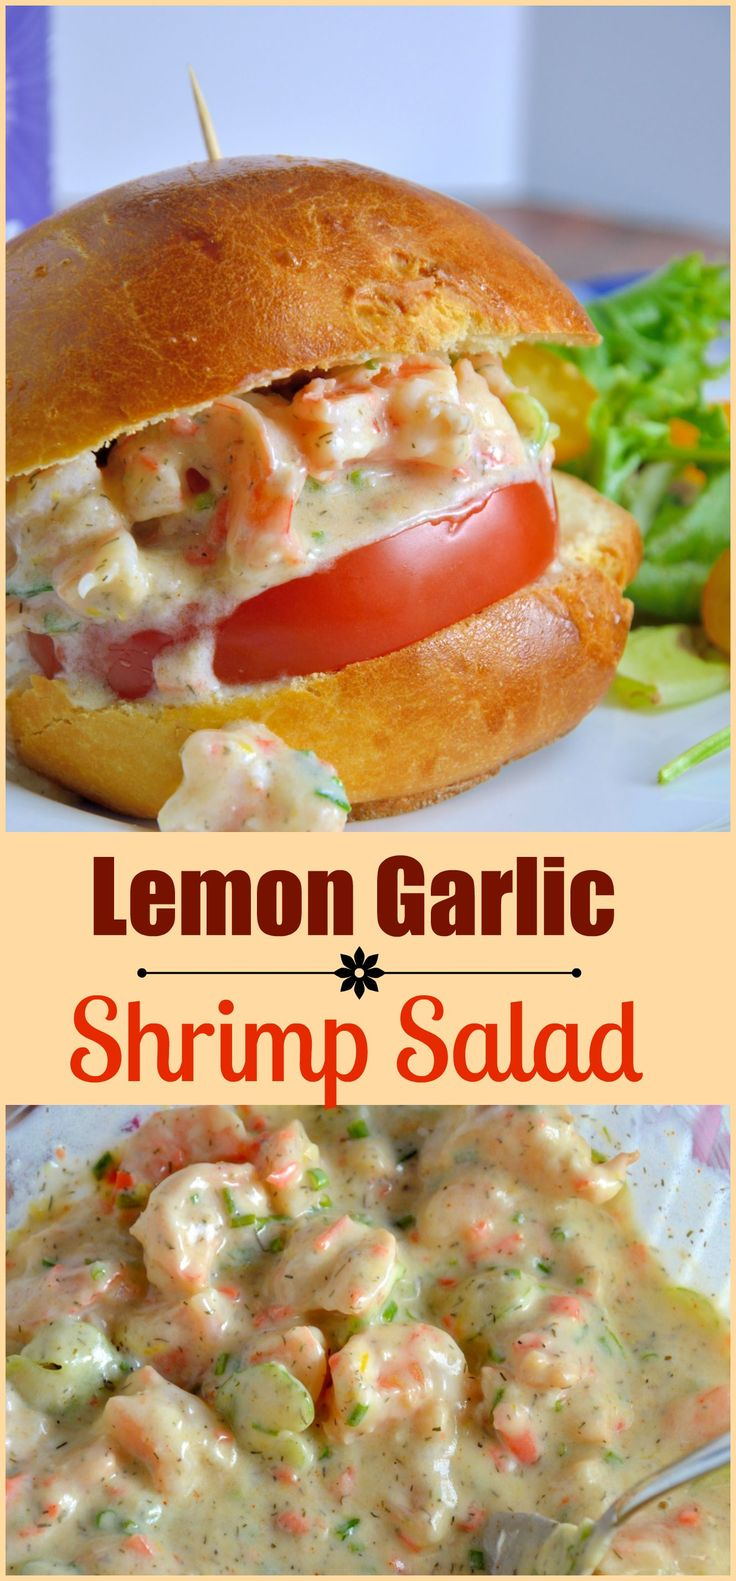 Lemon Garlic Shrimp Salad is a healthier version of classic comfort food using plain yogurt, celery, carrots, chives, dill and spices on a buttery brioche roll.